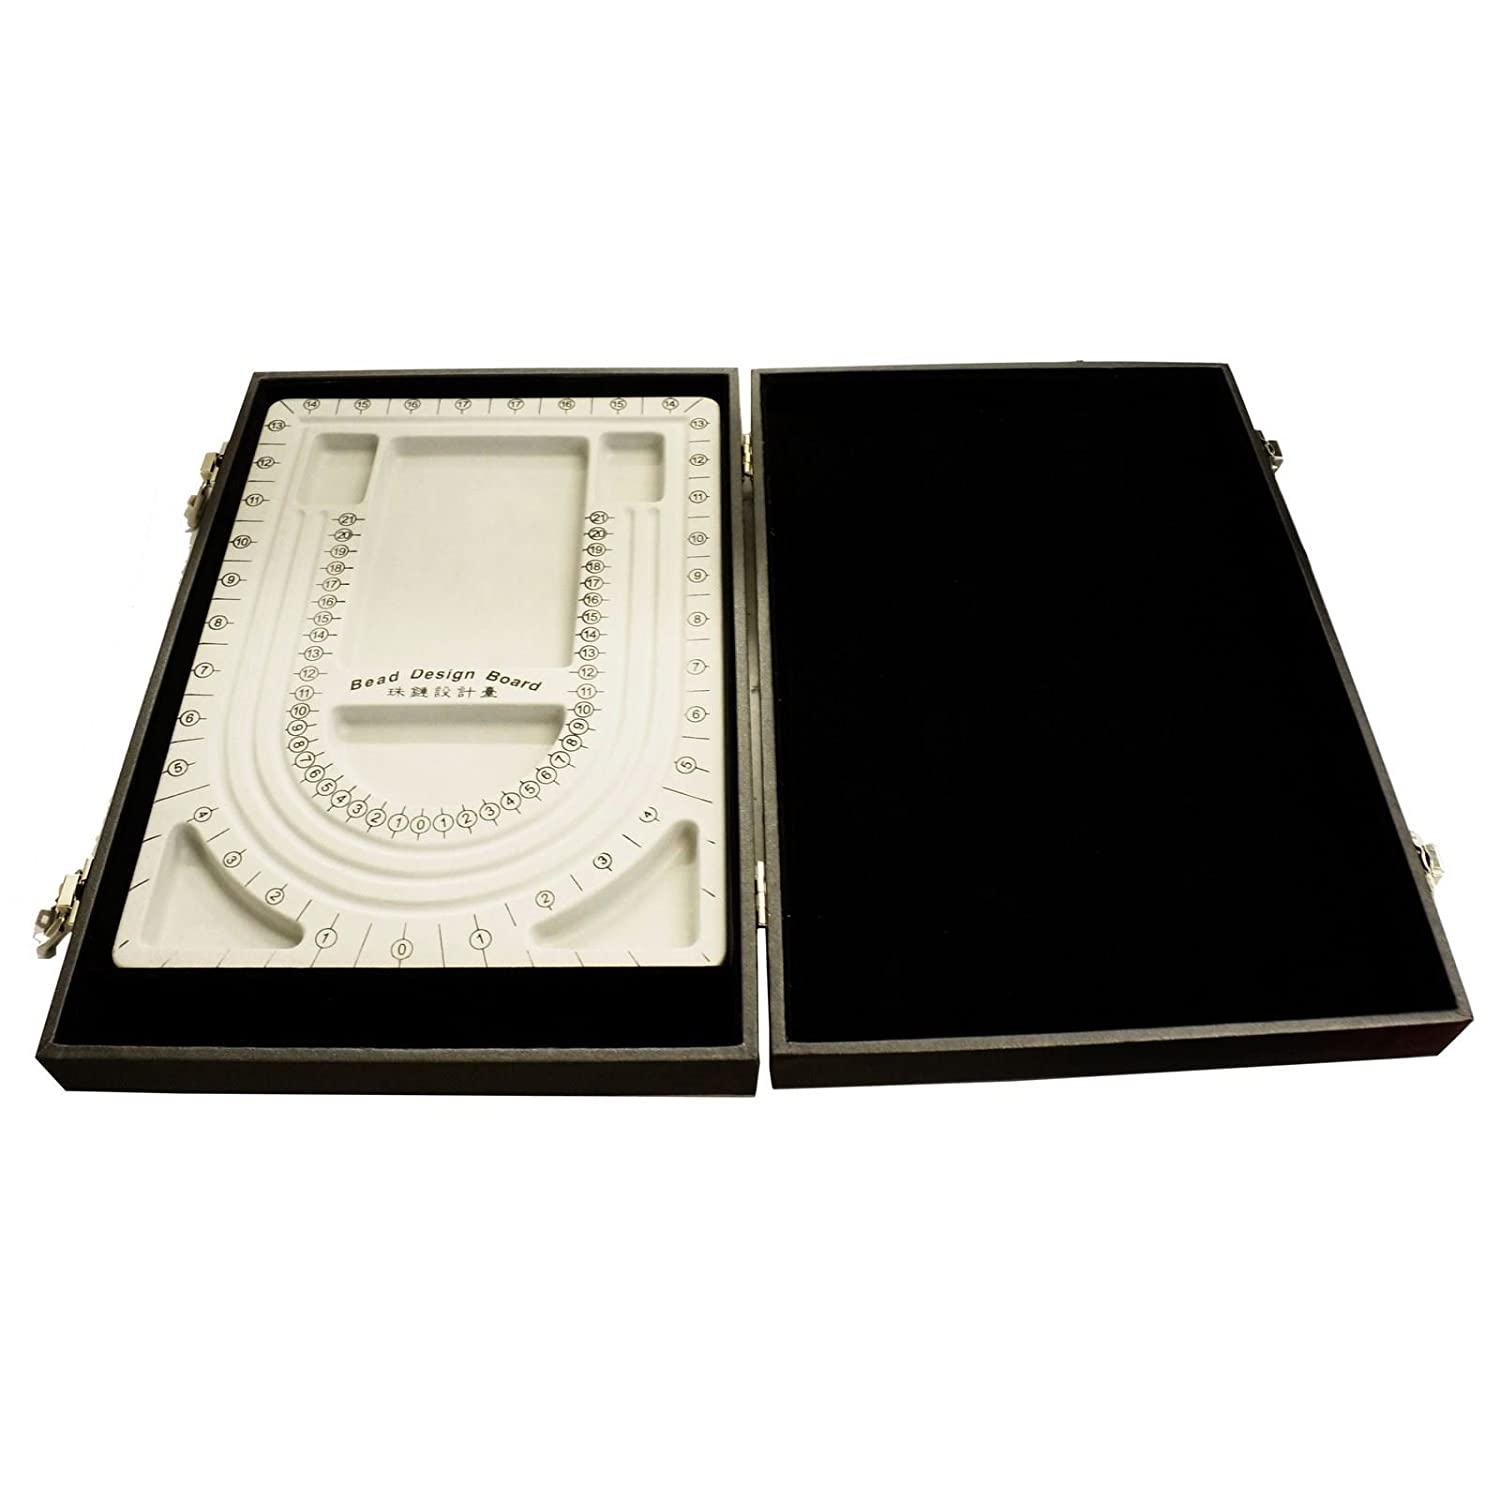 Black Bead Design Board Case Box w Plain Tray to Hold Jewelry tools and Supplies Princess-J